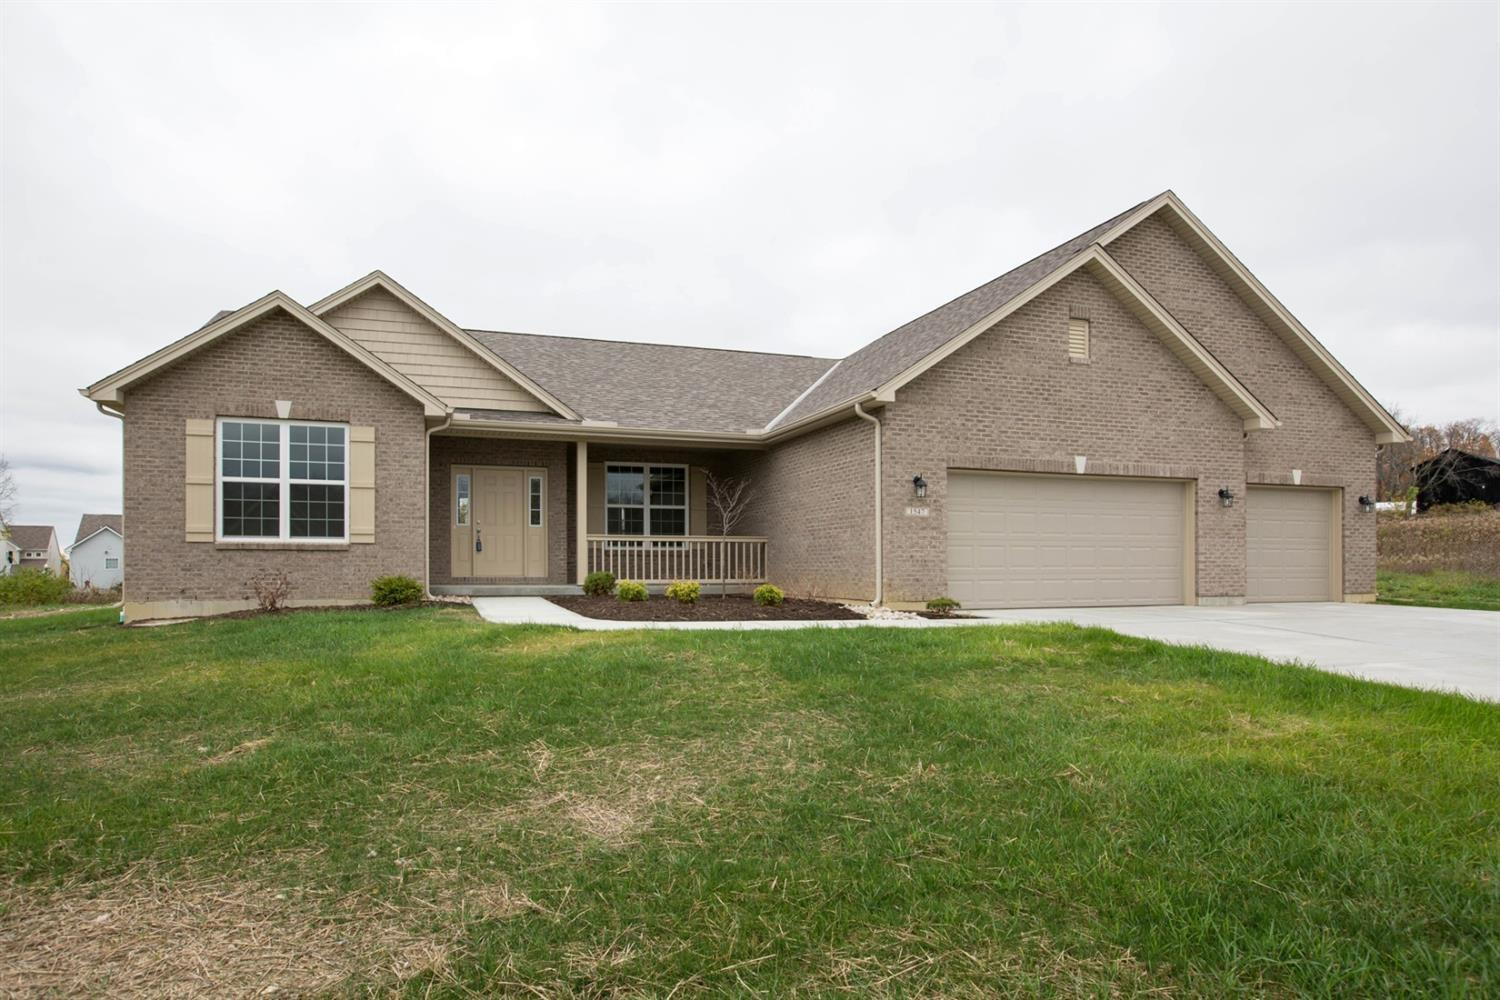 1547 Meadow View Ln Turtle Creek Twp., OH